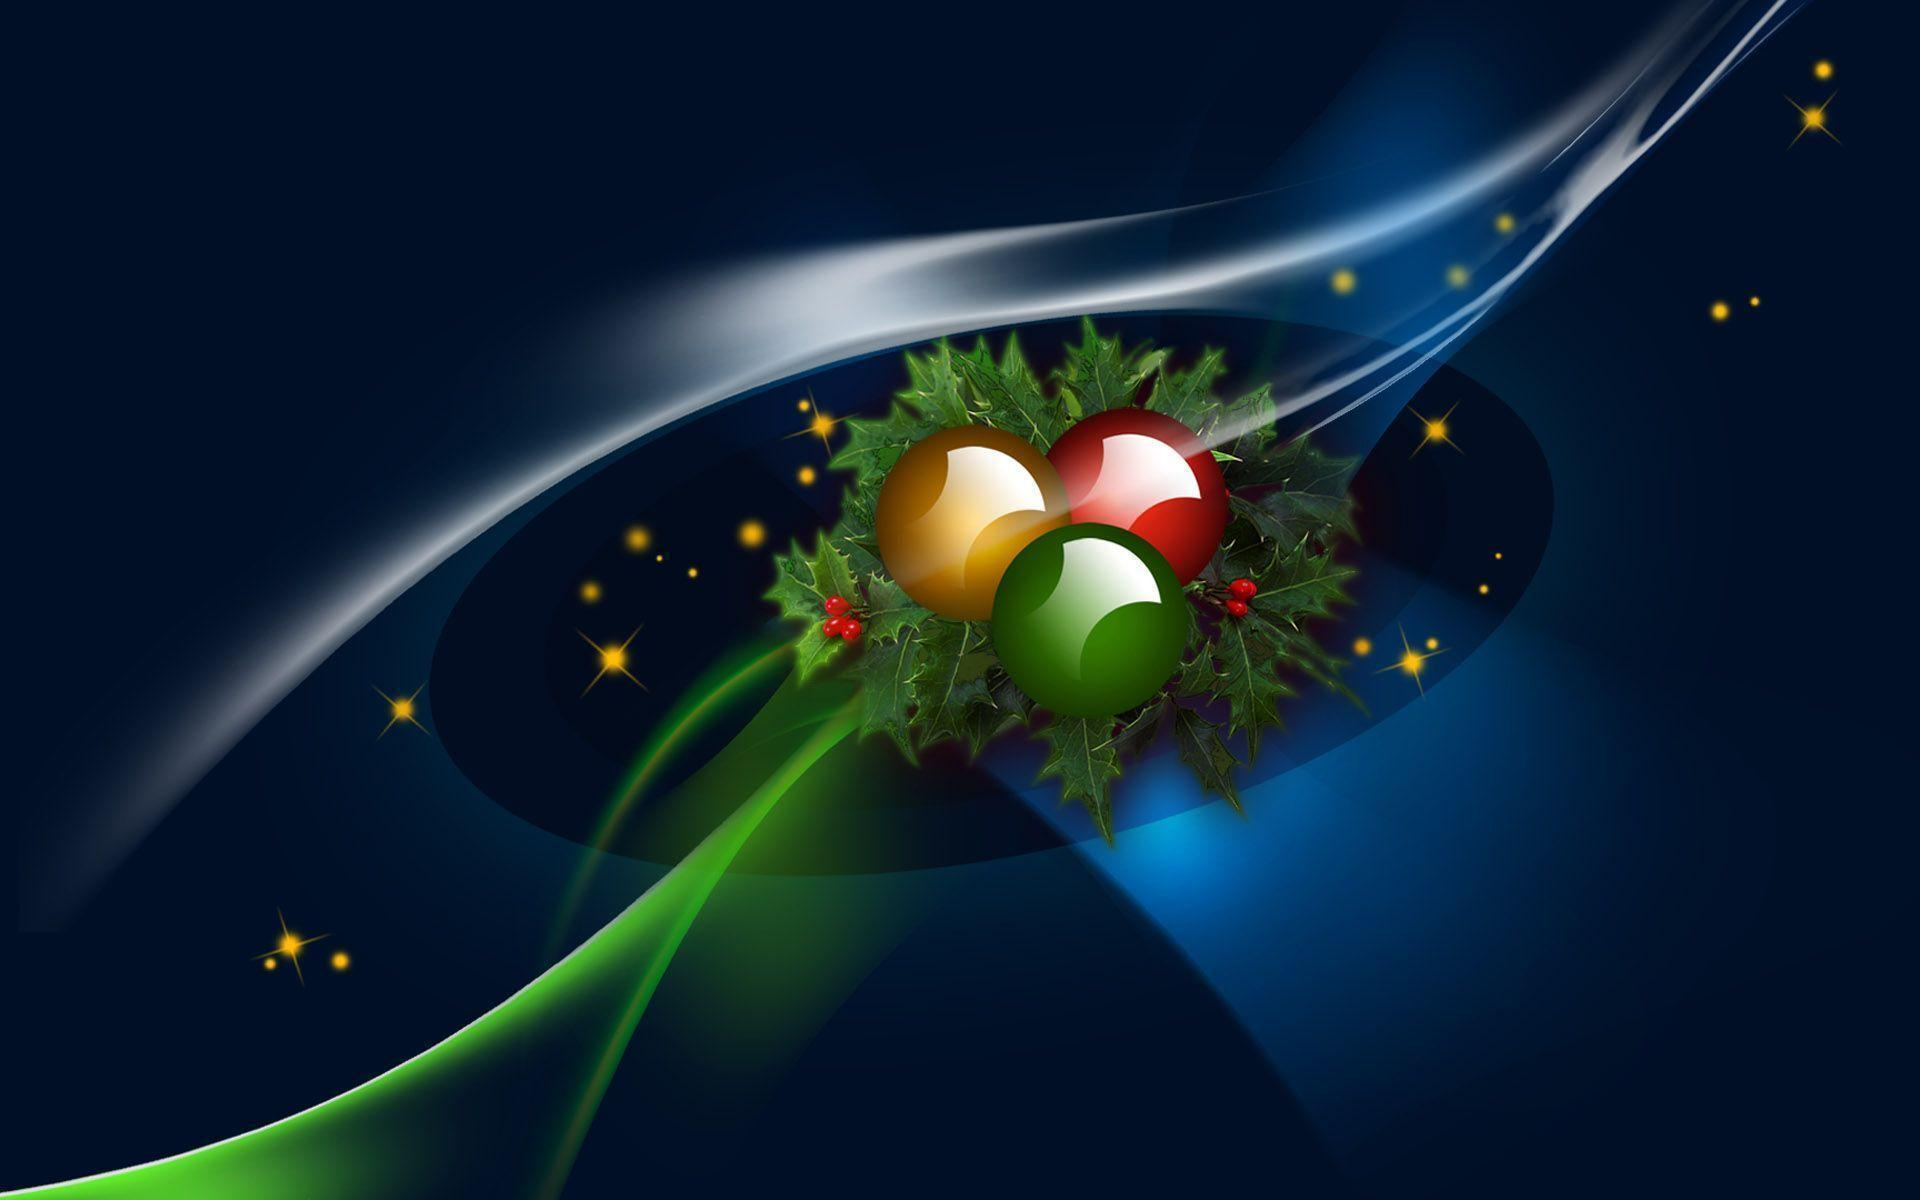 Christmas Wallpapers 3d - Wallpaper Cave